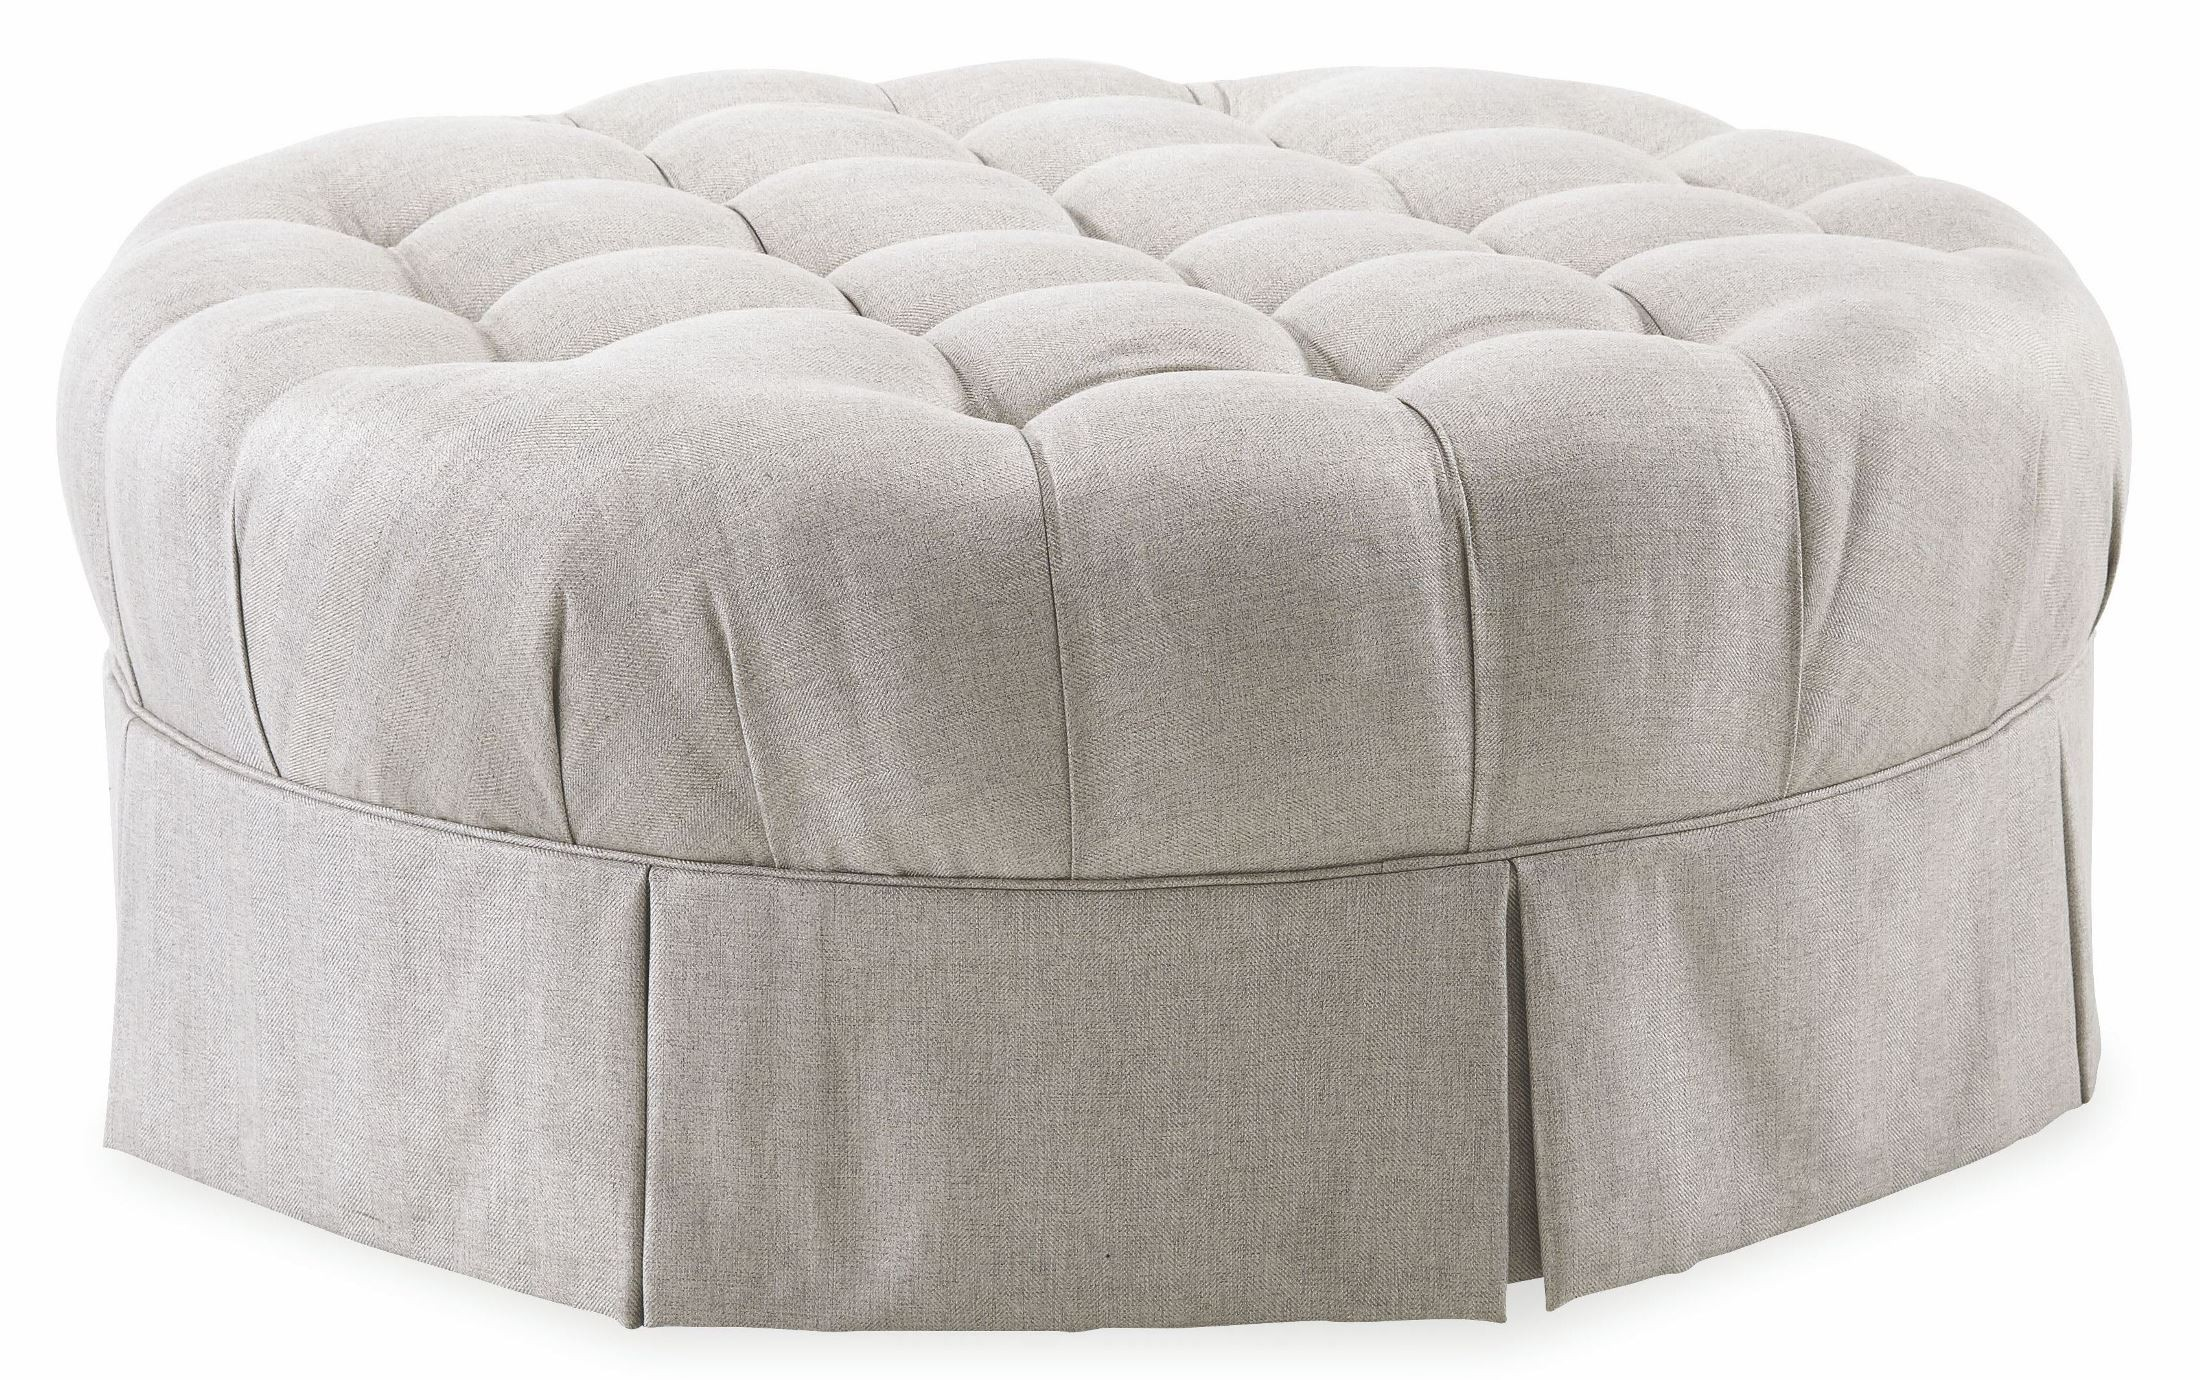 Ava Grey Round Tufted Top Ottoman From Art 513524 5001aa